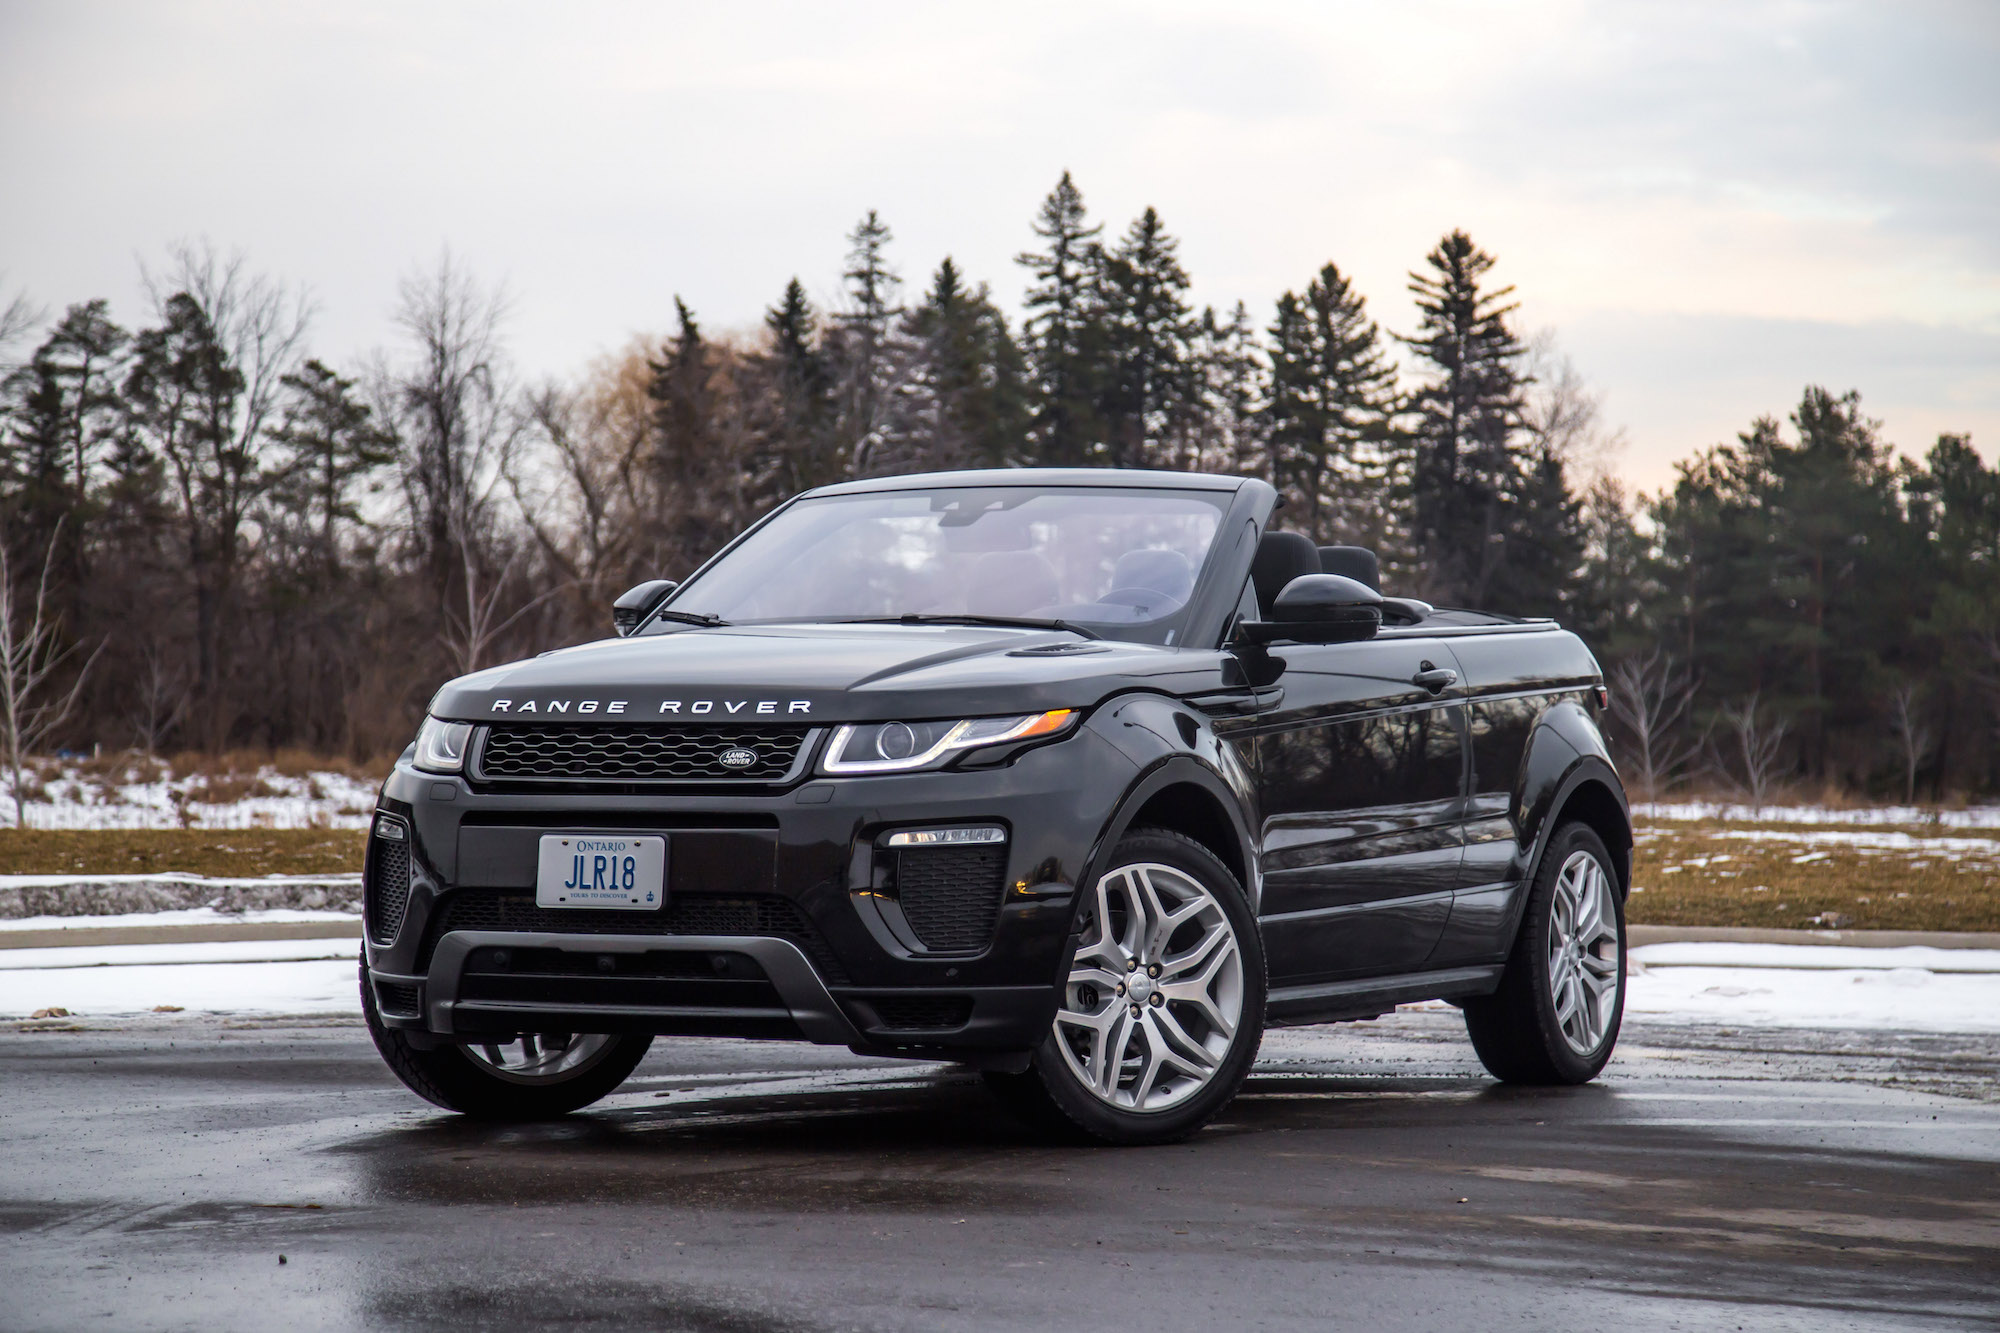 Range Rover Convertible Price >> Review: 2017 Range Rover Evoque Convertible | Canadian ...